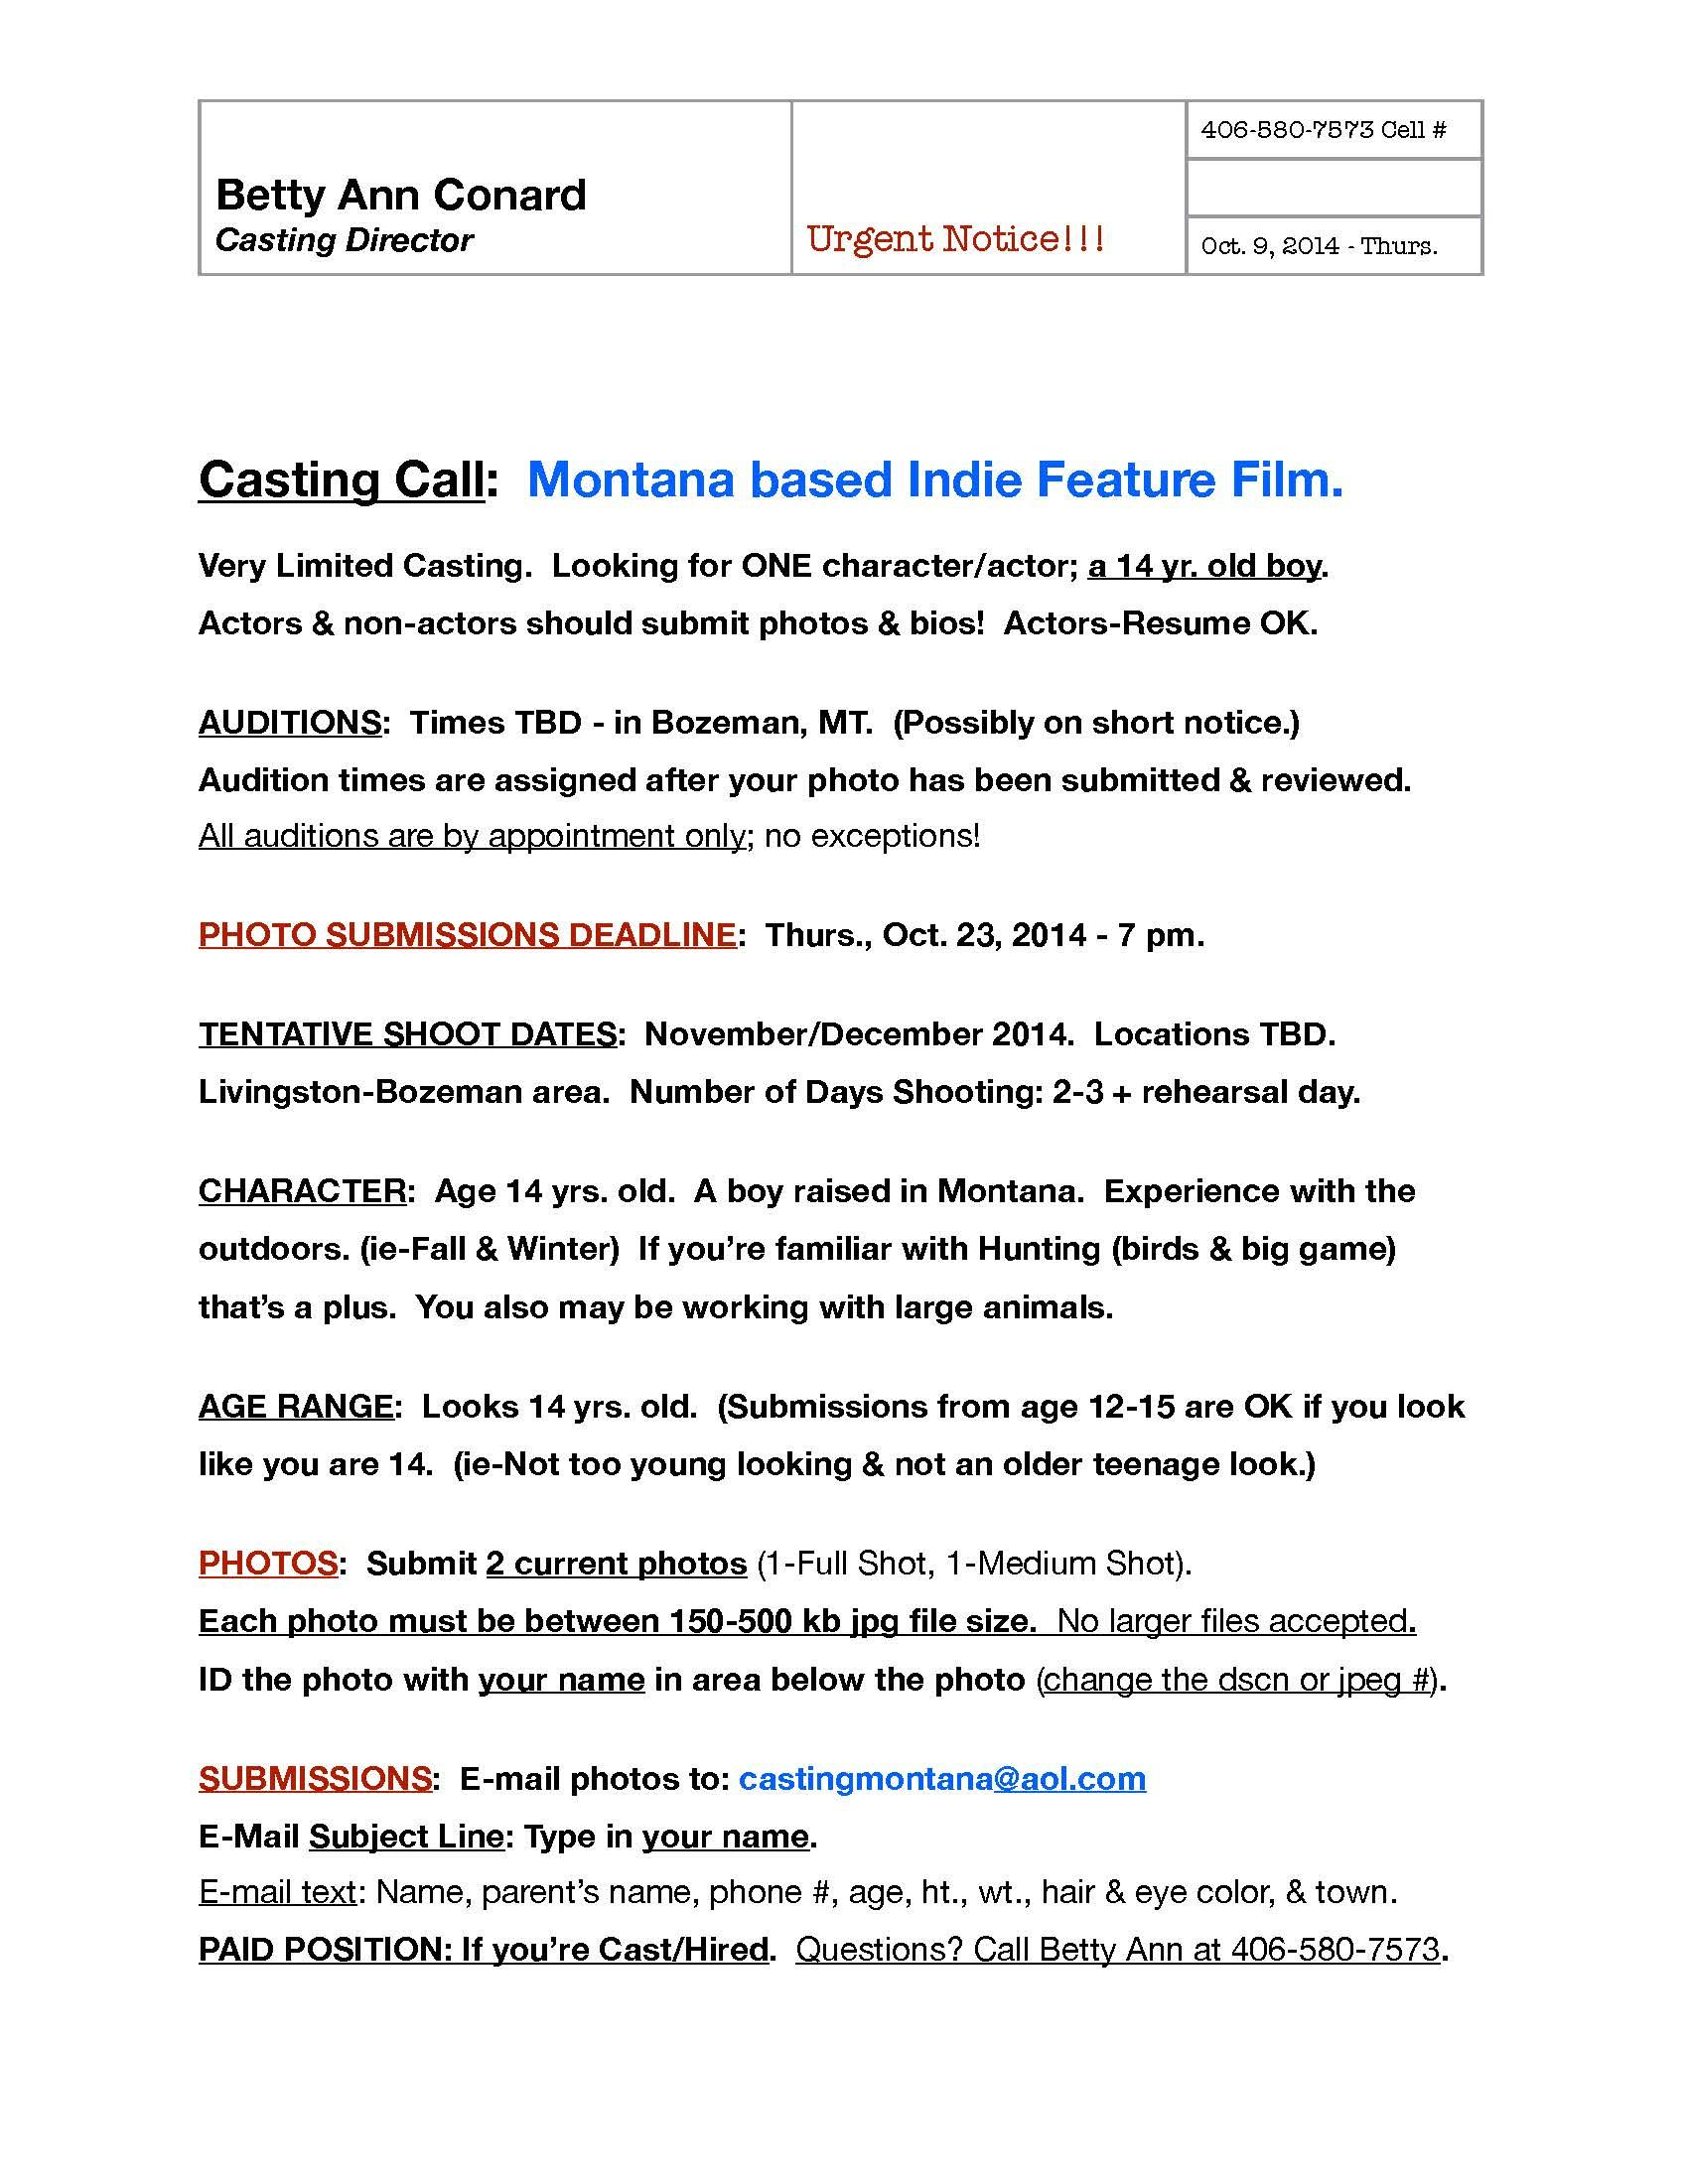 Casting call mt indie feature 2014g 17002200 film and casting call mt indie feature 2014g 1700 pronofoot35fo Choice Image